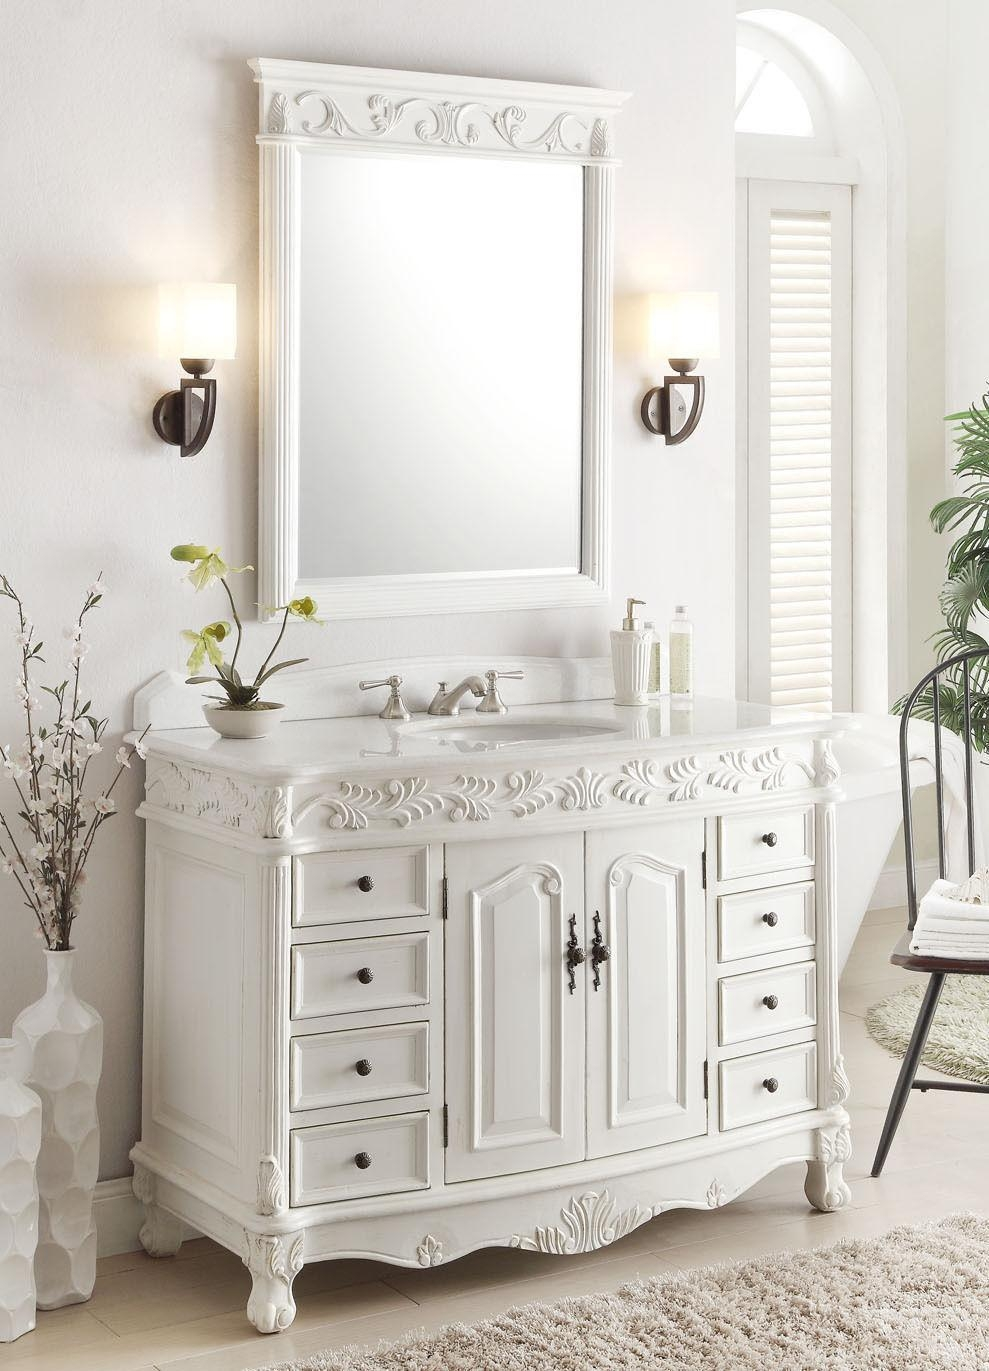 Elegant Antique White Bathroom Vanity Mirrors 82 For Your With In White Antique Mirrors (View 16 of 20)